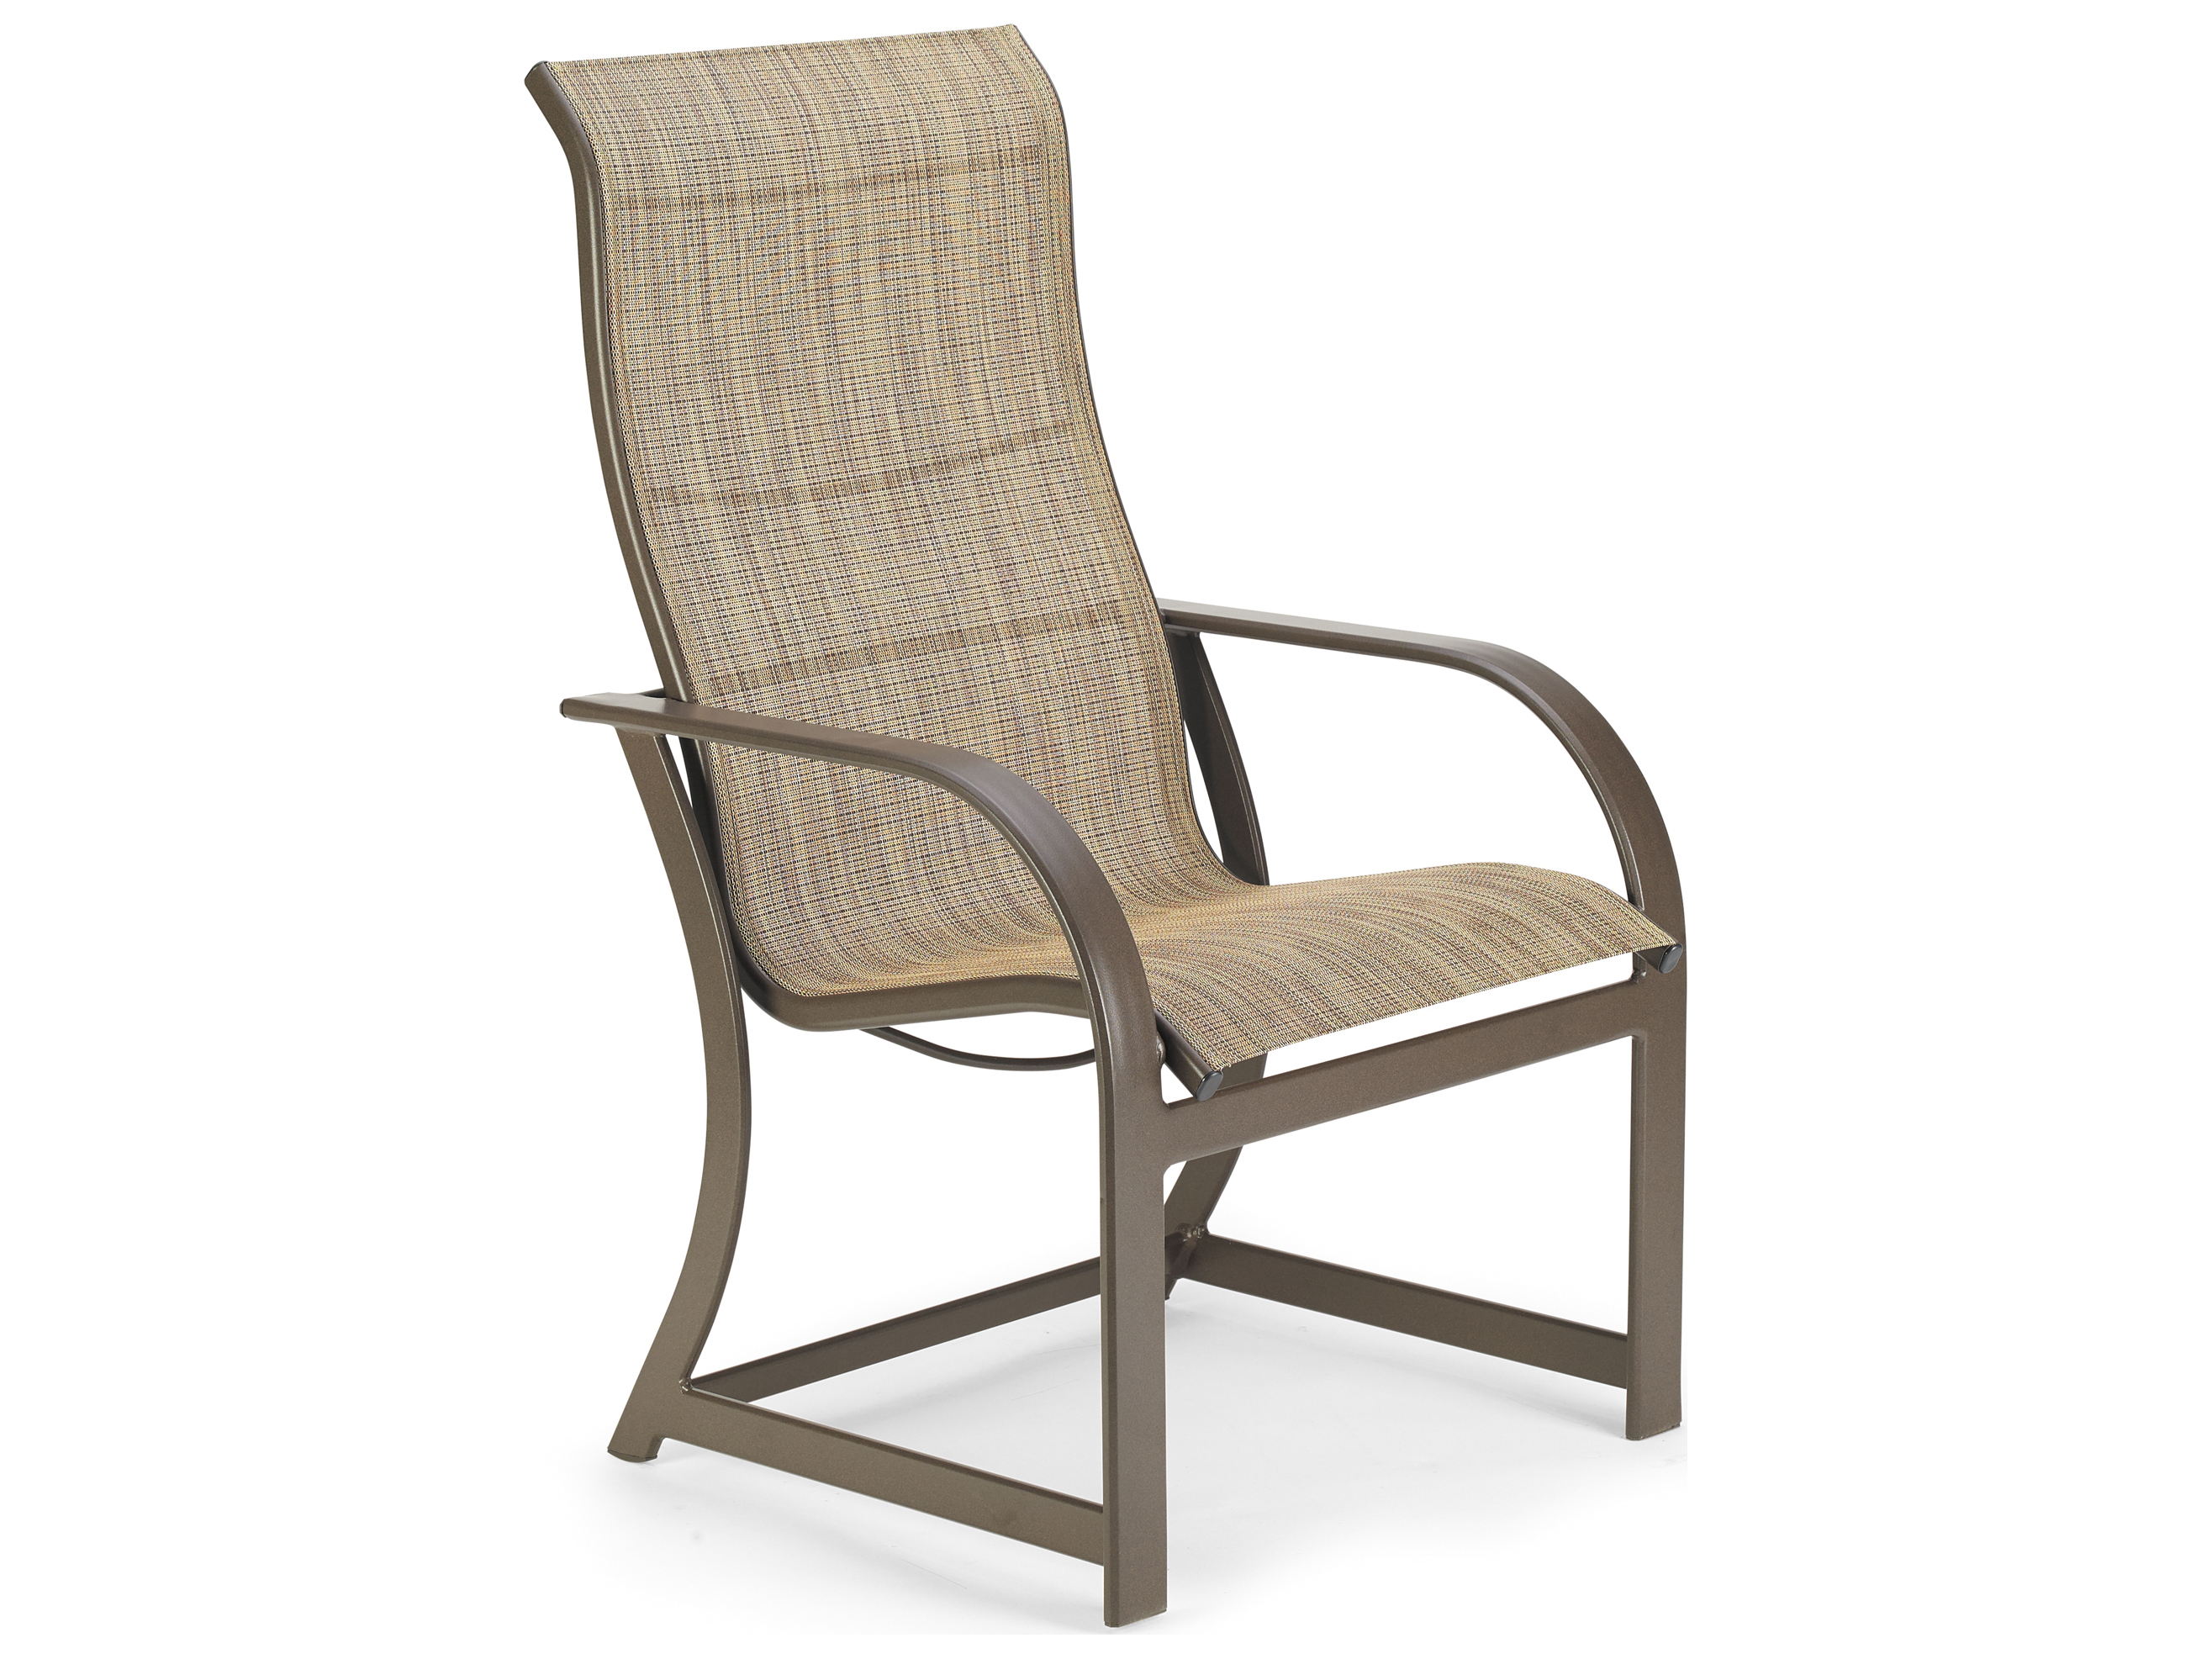 key west chairs mom to be chair for baby shower winston quick ship sling aluminum ultimate high